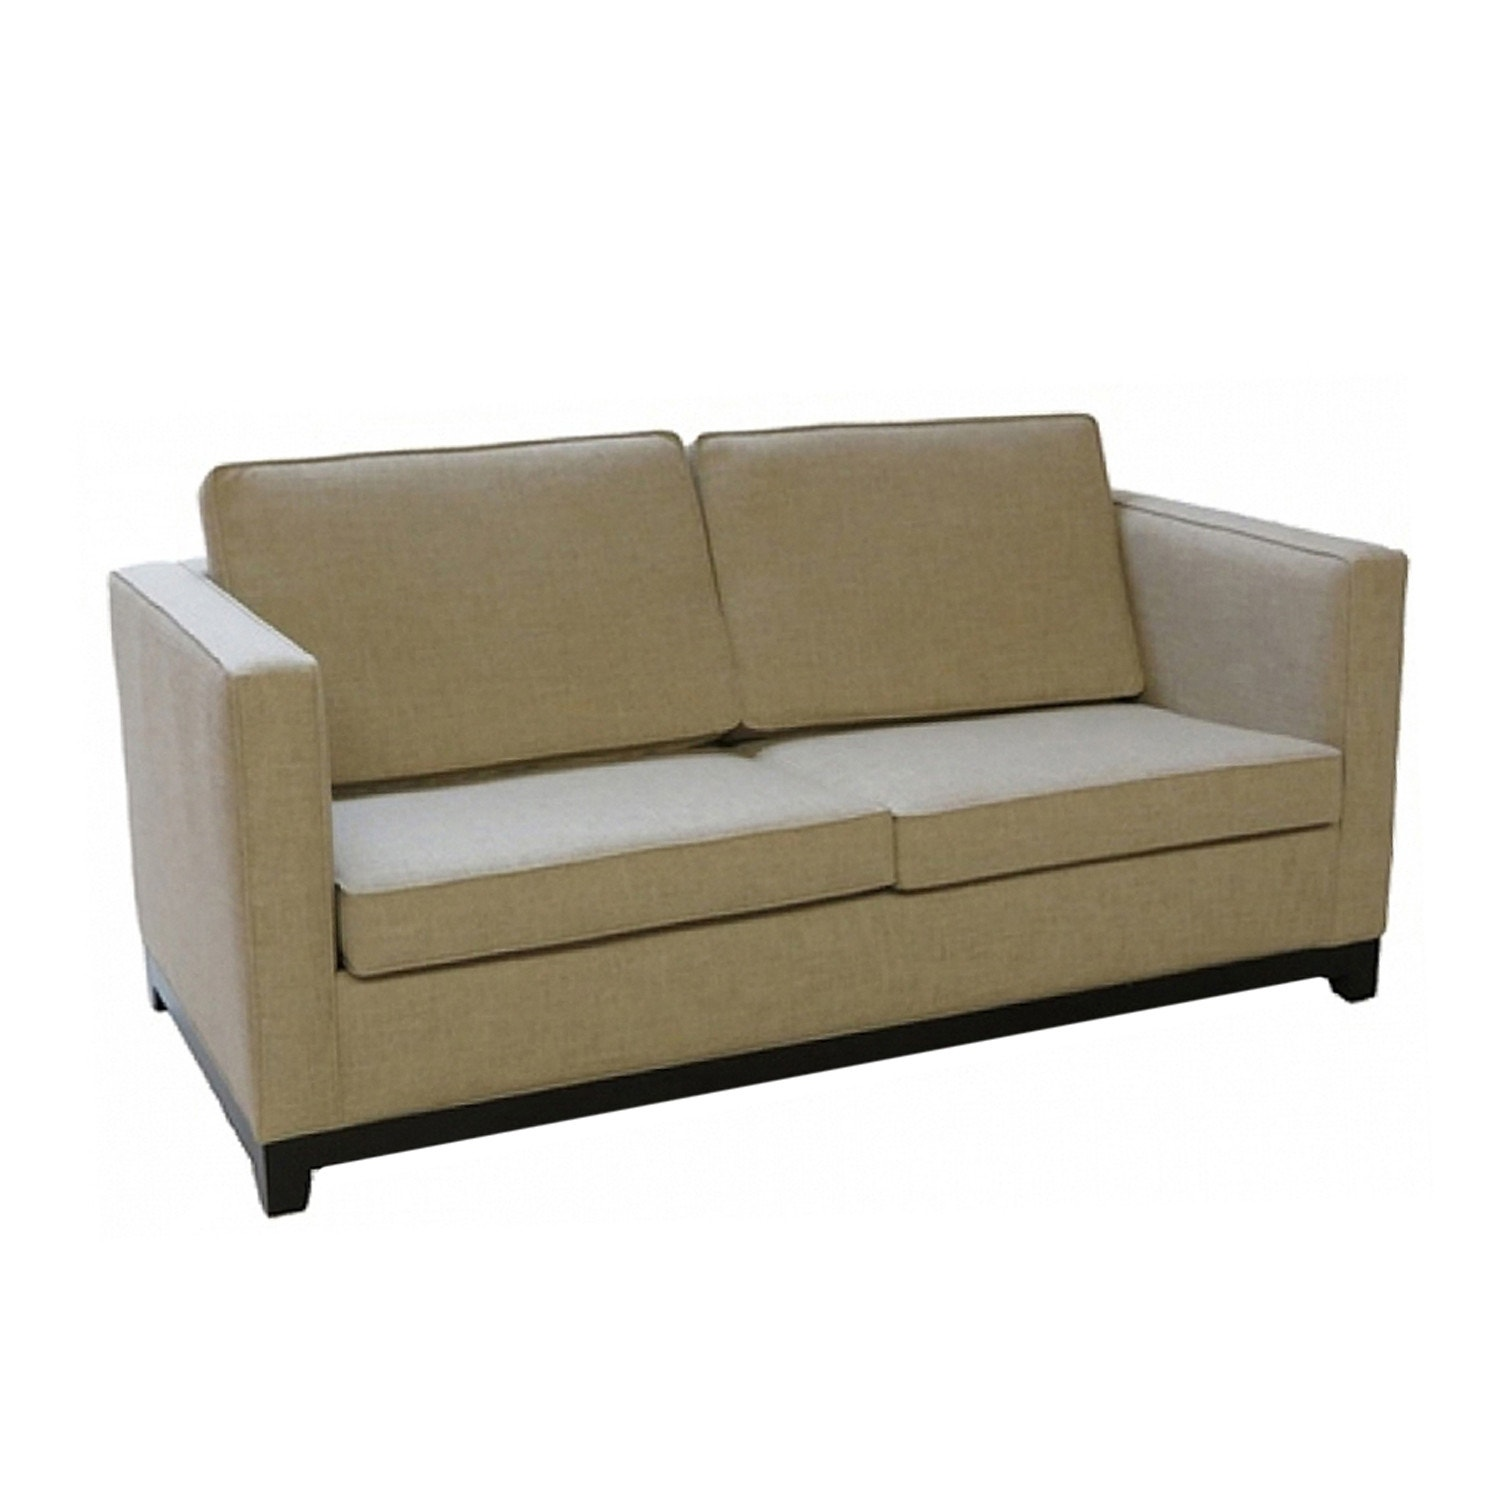 eaton custom seating studio collection sleeper sofa queen sleeper rh americanhotel com custom sleeper sofa slipcovers custom built sleeper sofa